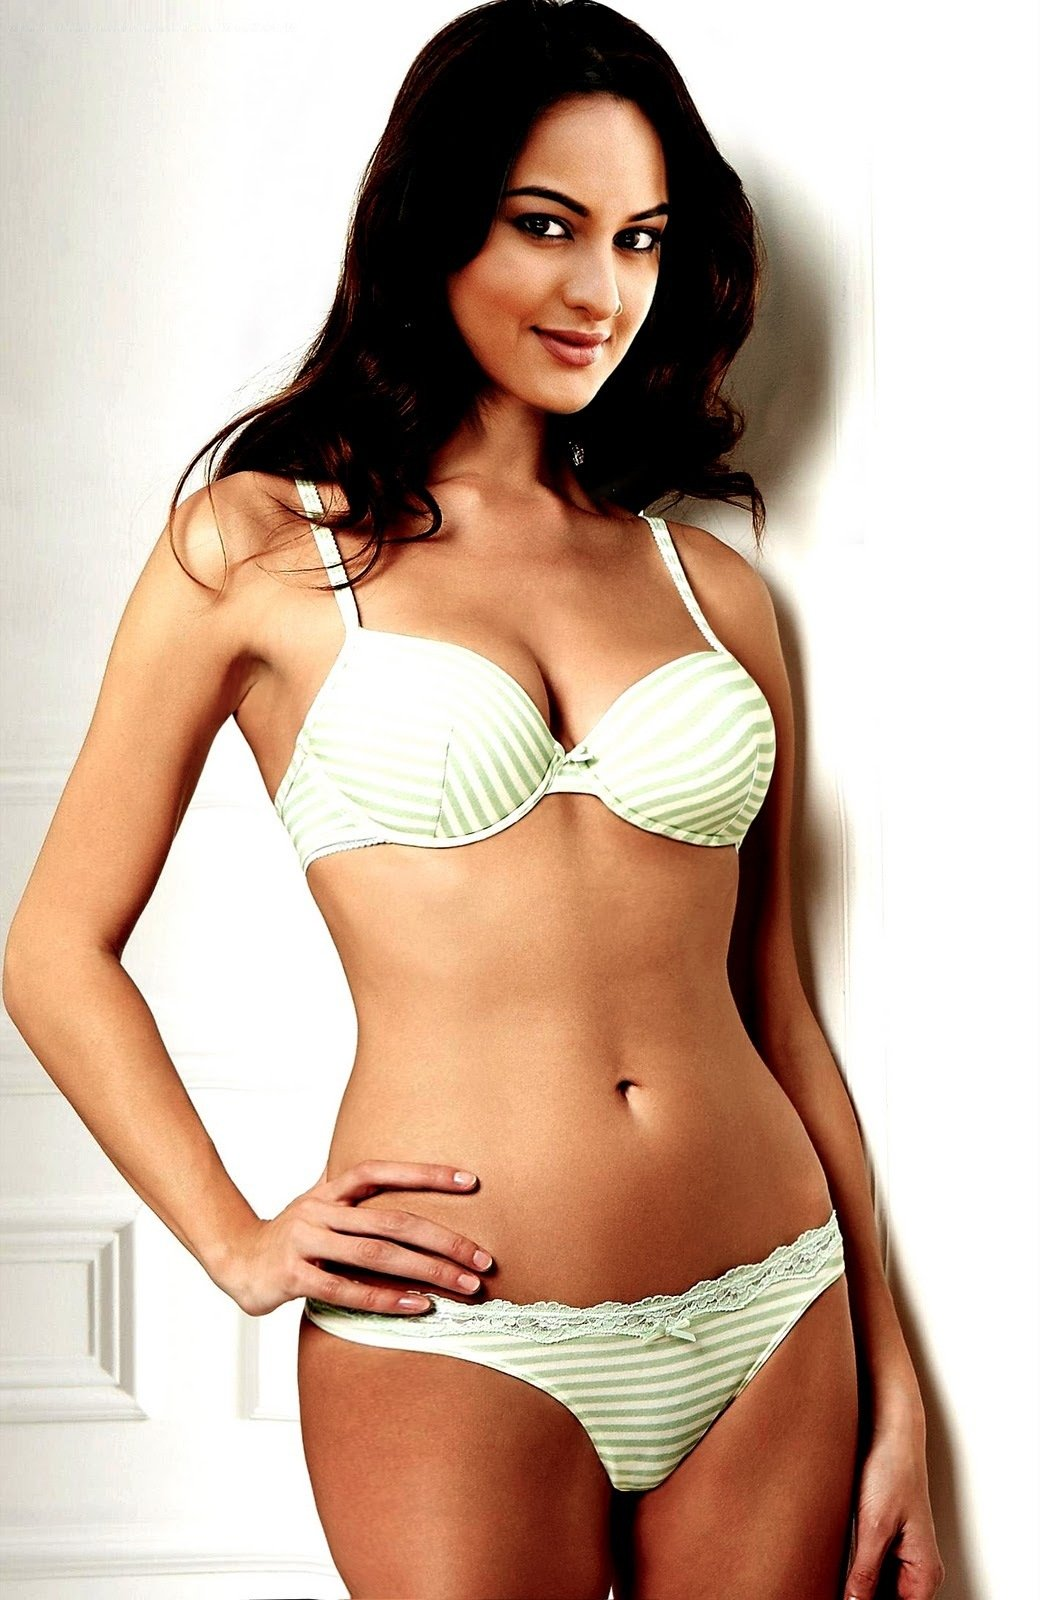 Sonakshi Sinha is an Indian Bollywood actress and model. She marked